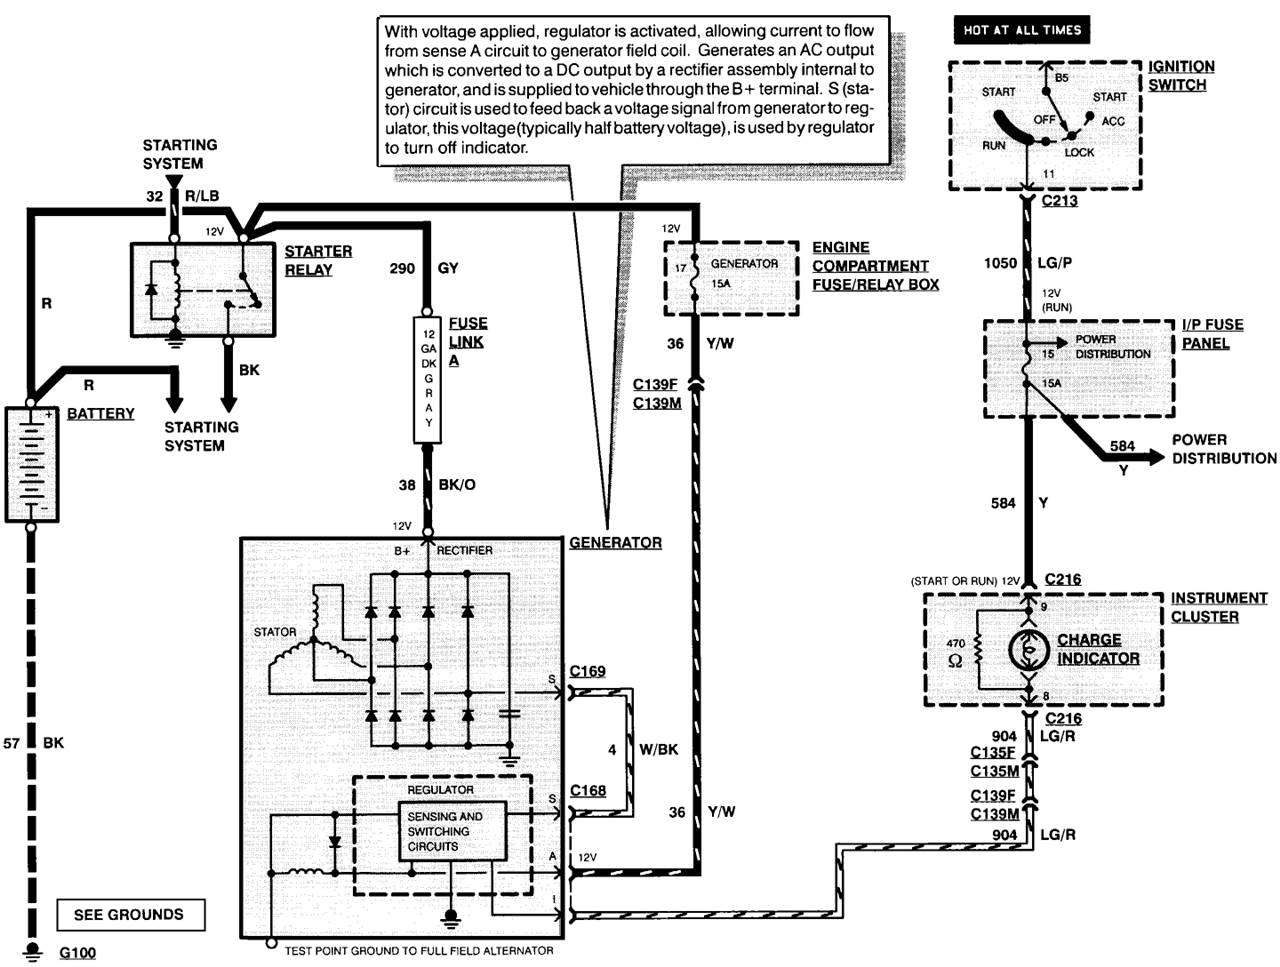 Wiring Diagram Alternator : 25 Wiring Diagram Images